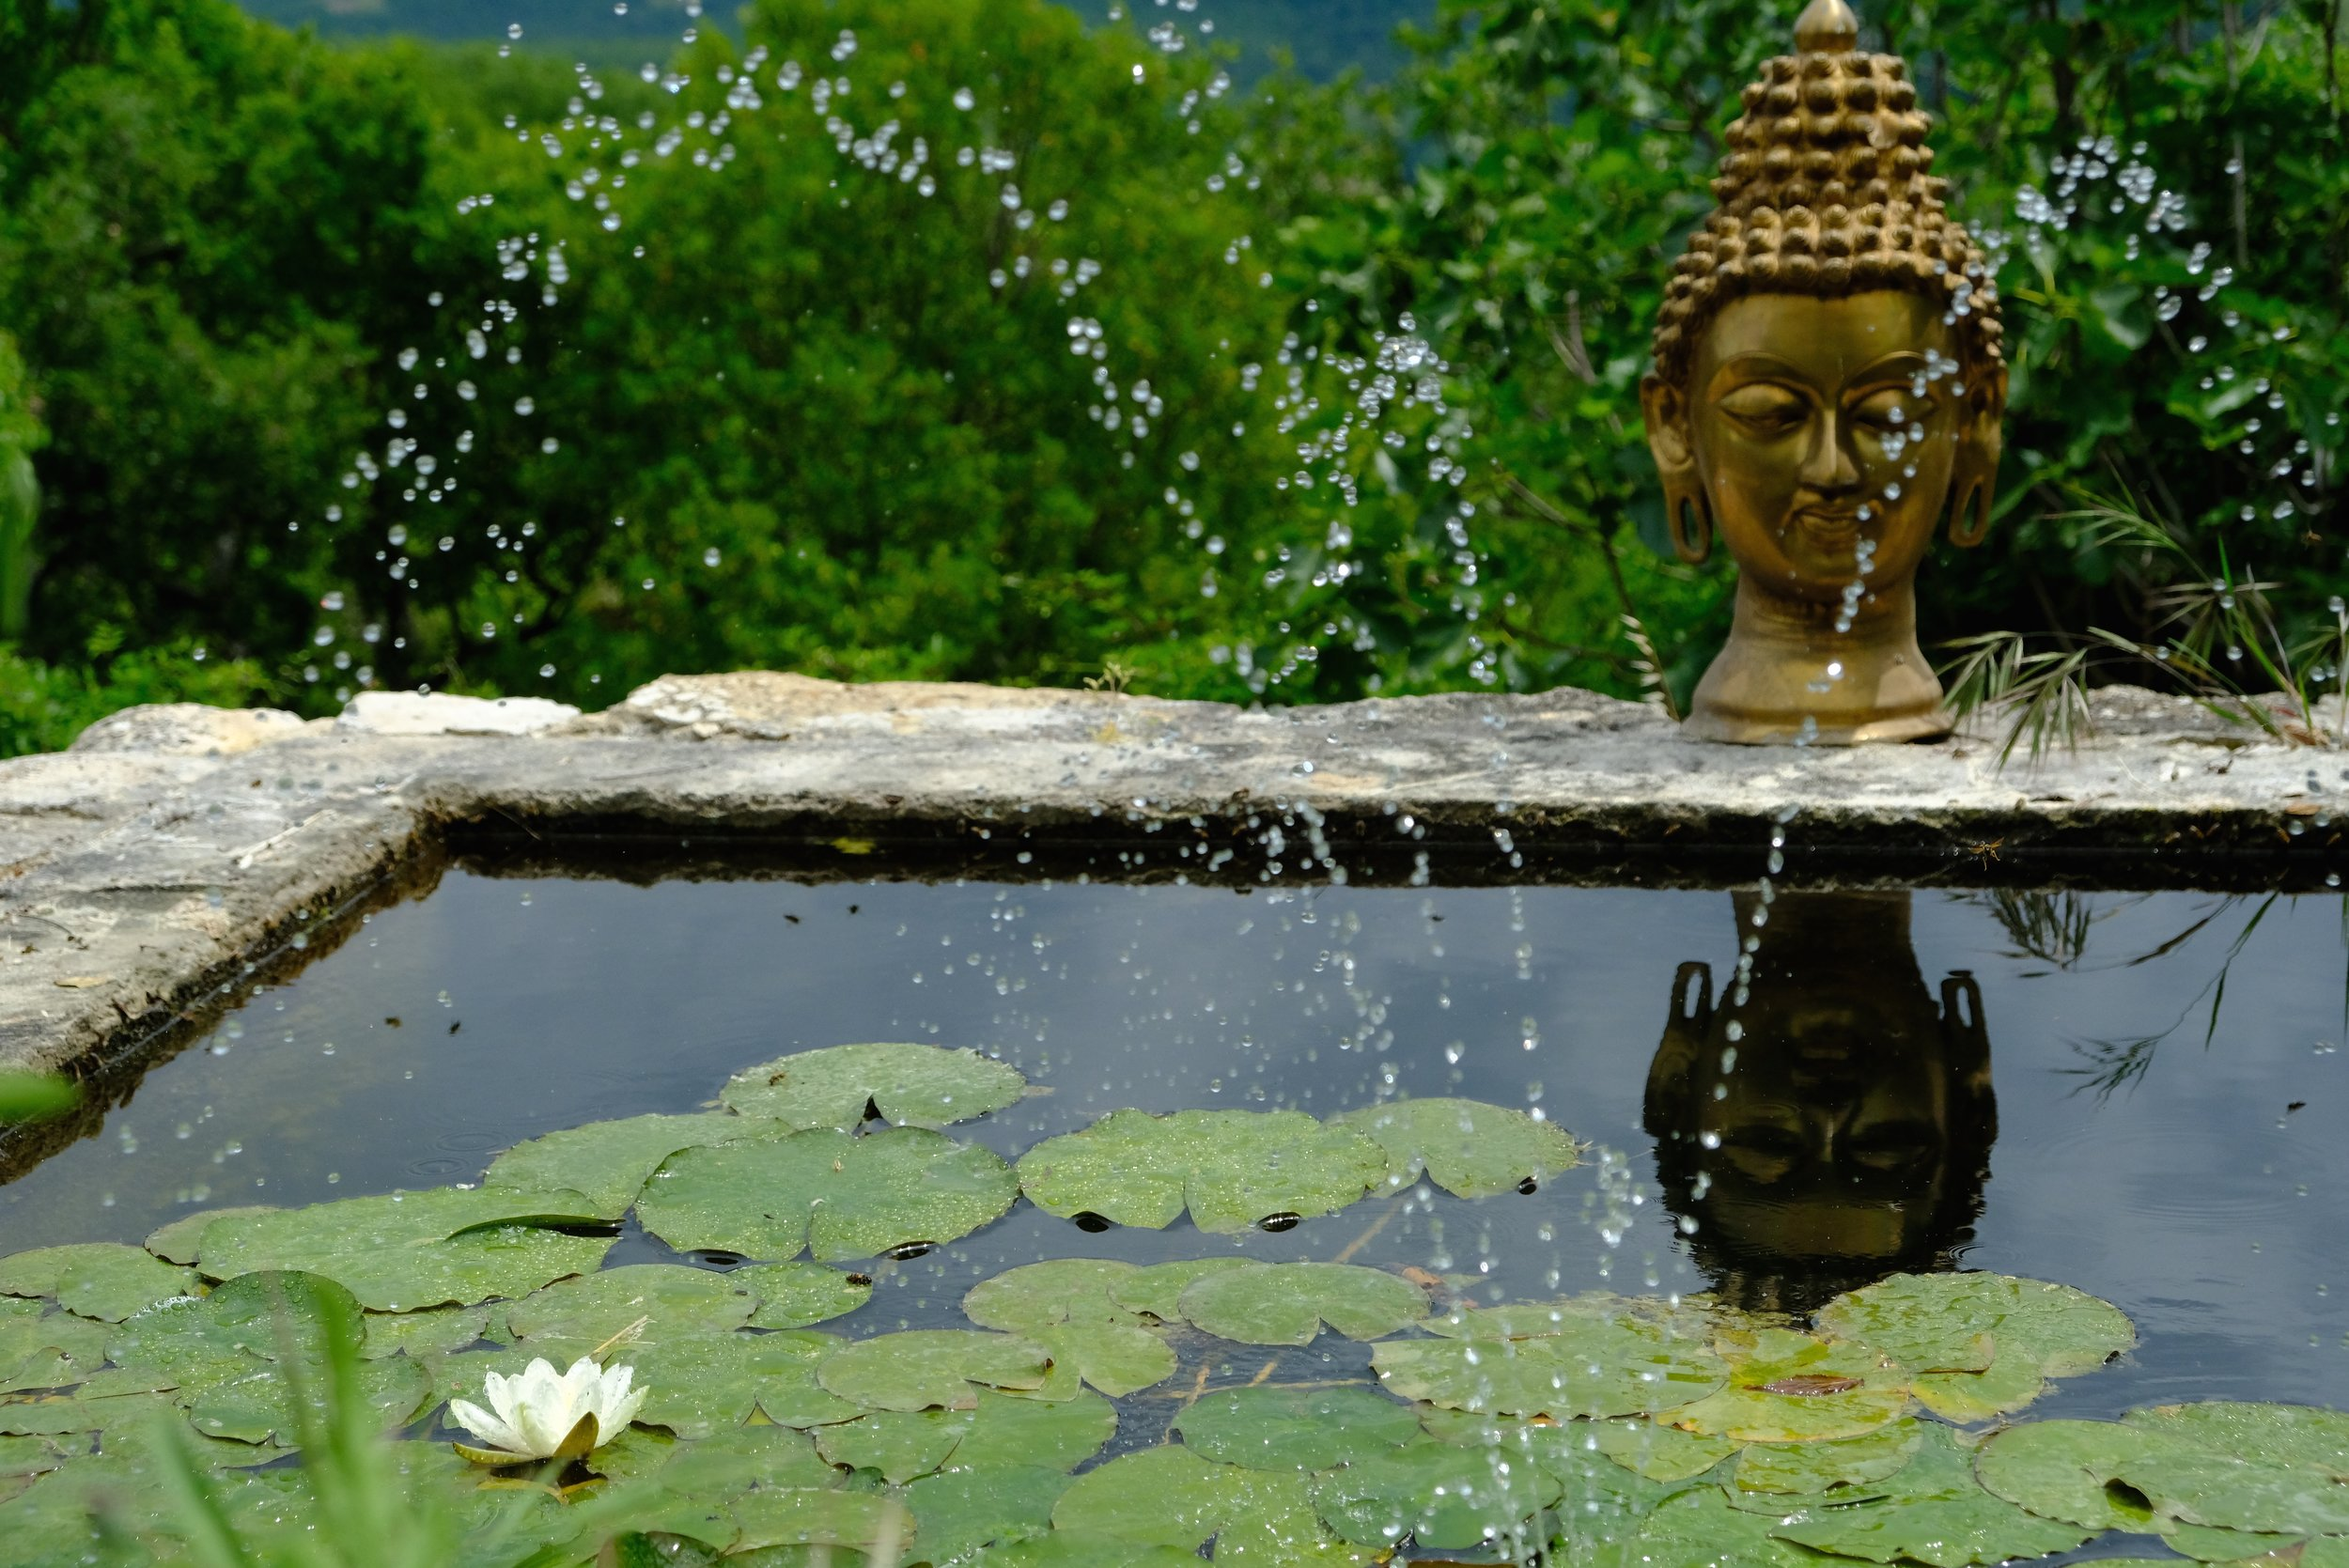 Buddha unperturbed by the bees. They fly around him all day. Some of their reflections are visible in the water.